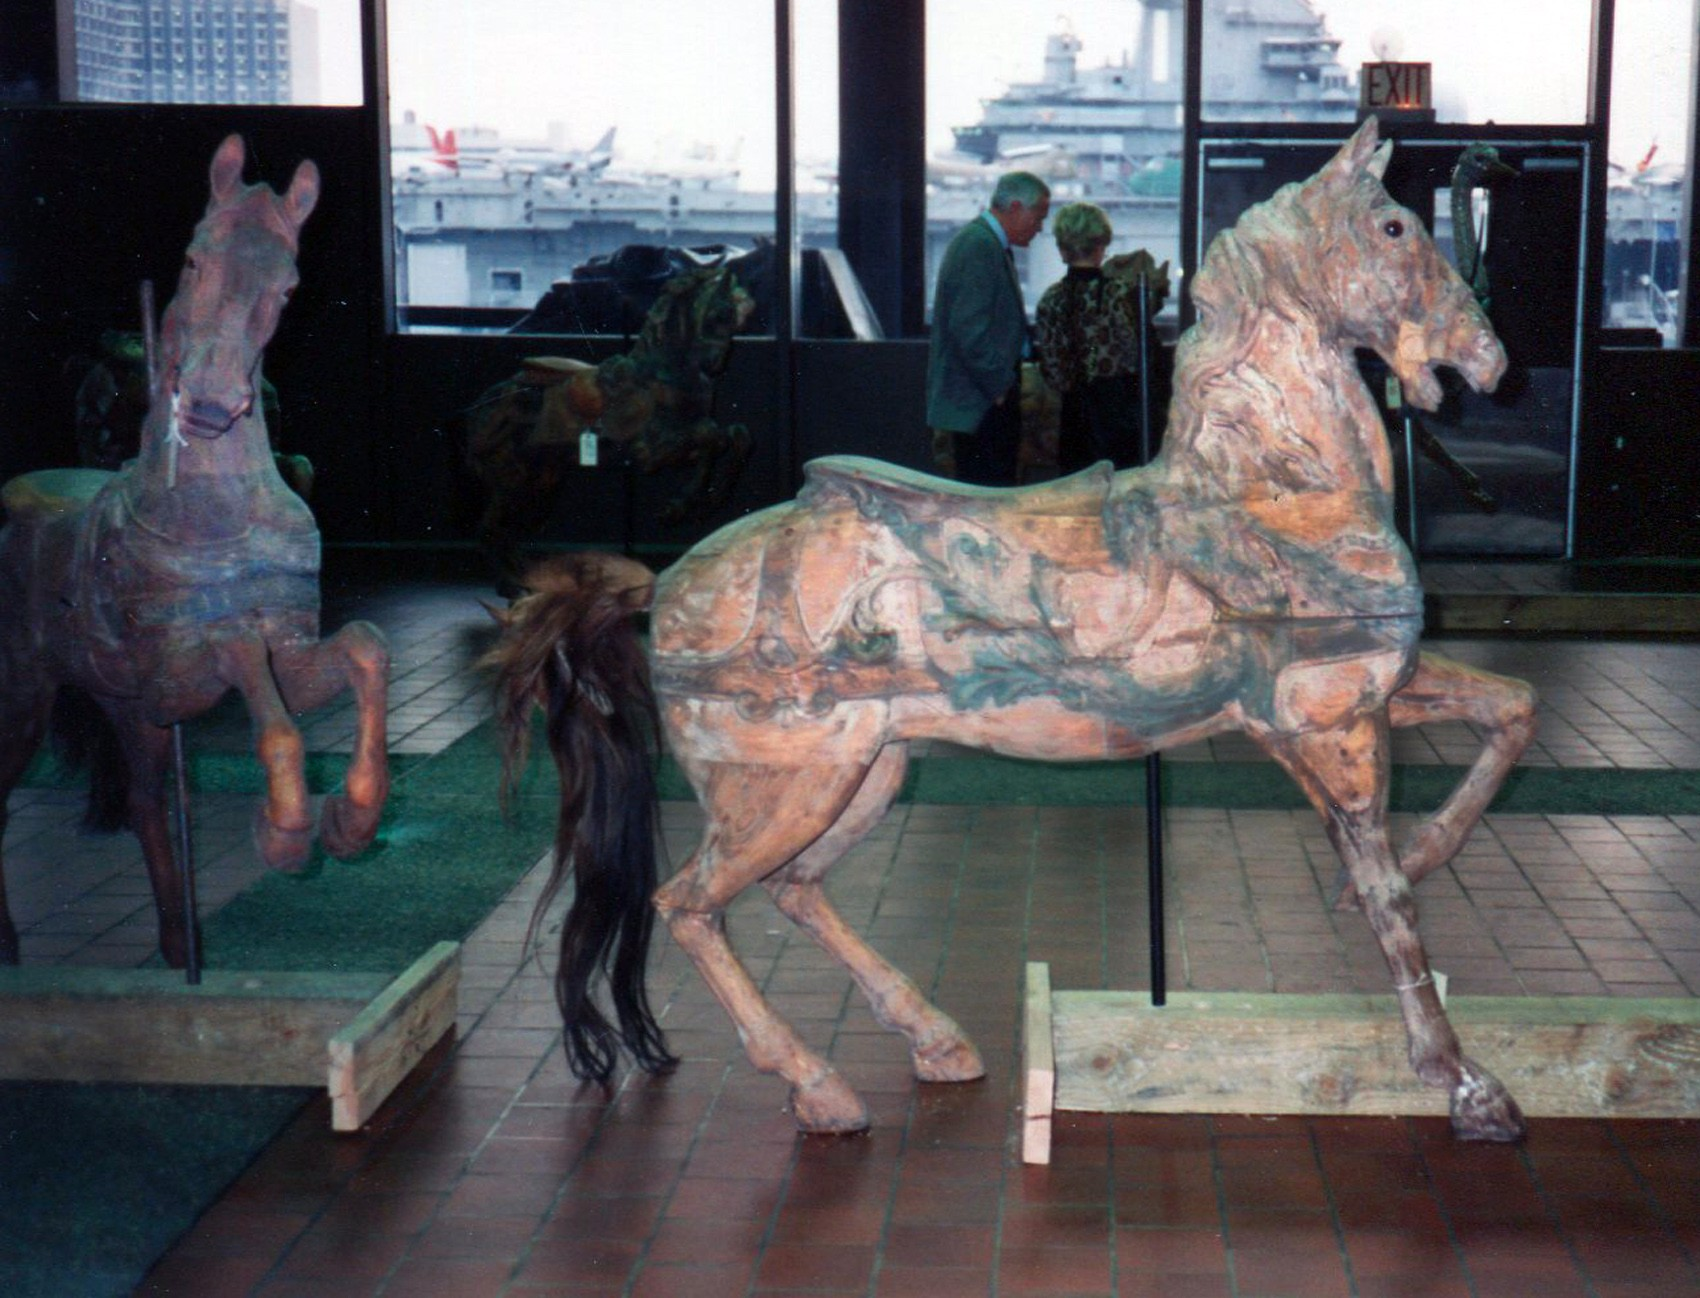 Dentzel-carousel-horses-Great-Escape-Fun-Park-NYC-auction-1989